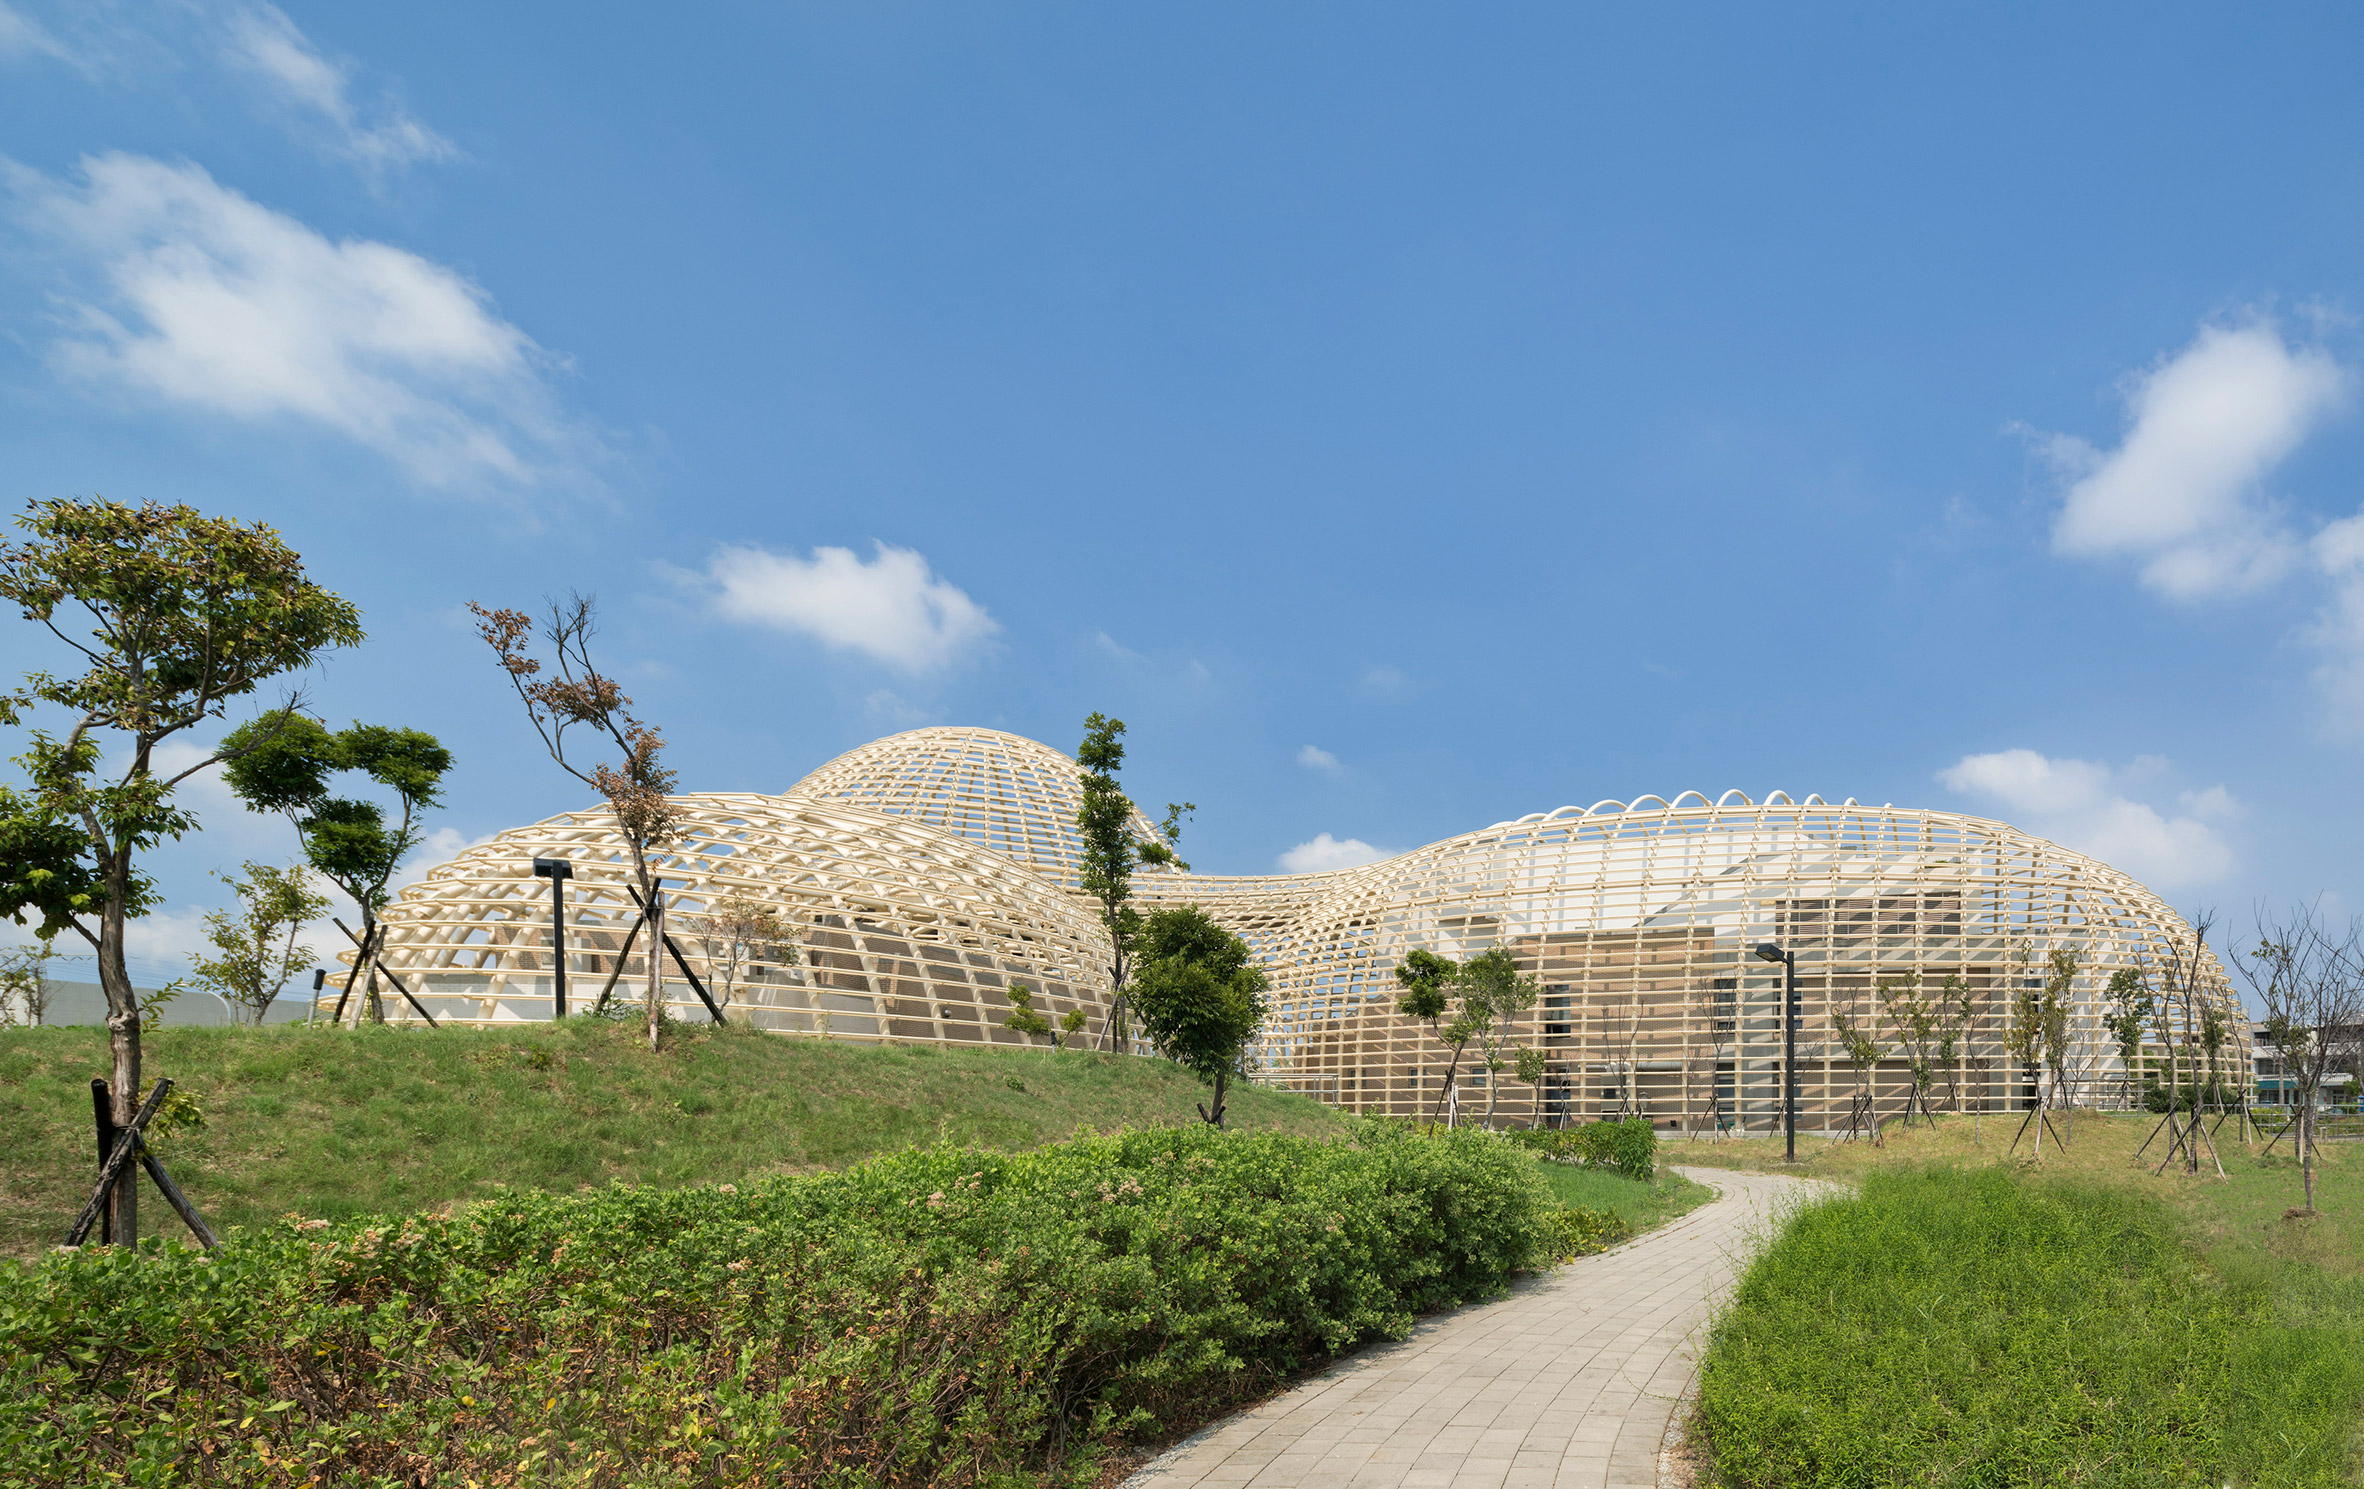 2_taoyuan-sewage-treatment-project-habitech-architects-taiwan-architecture_dezeen_2364_col_1.jpg